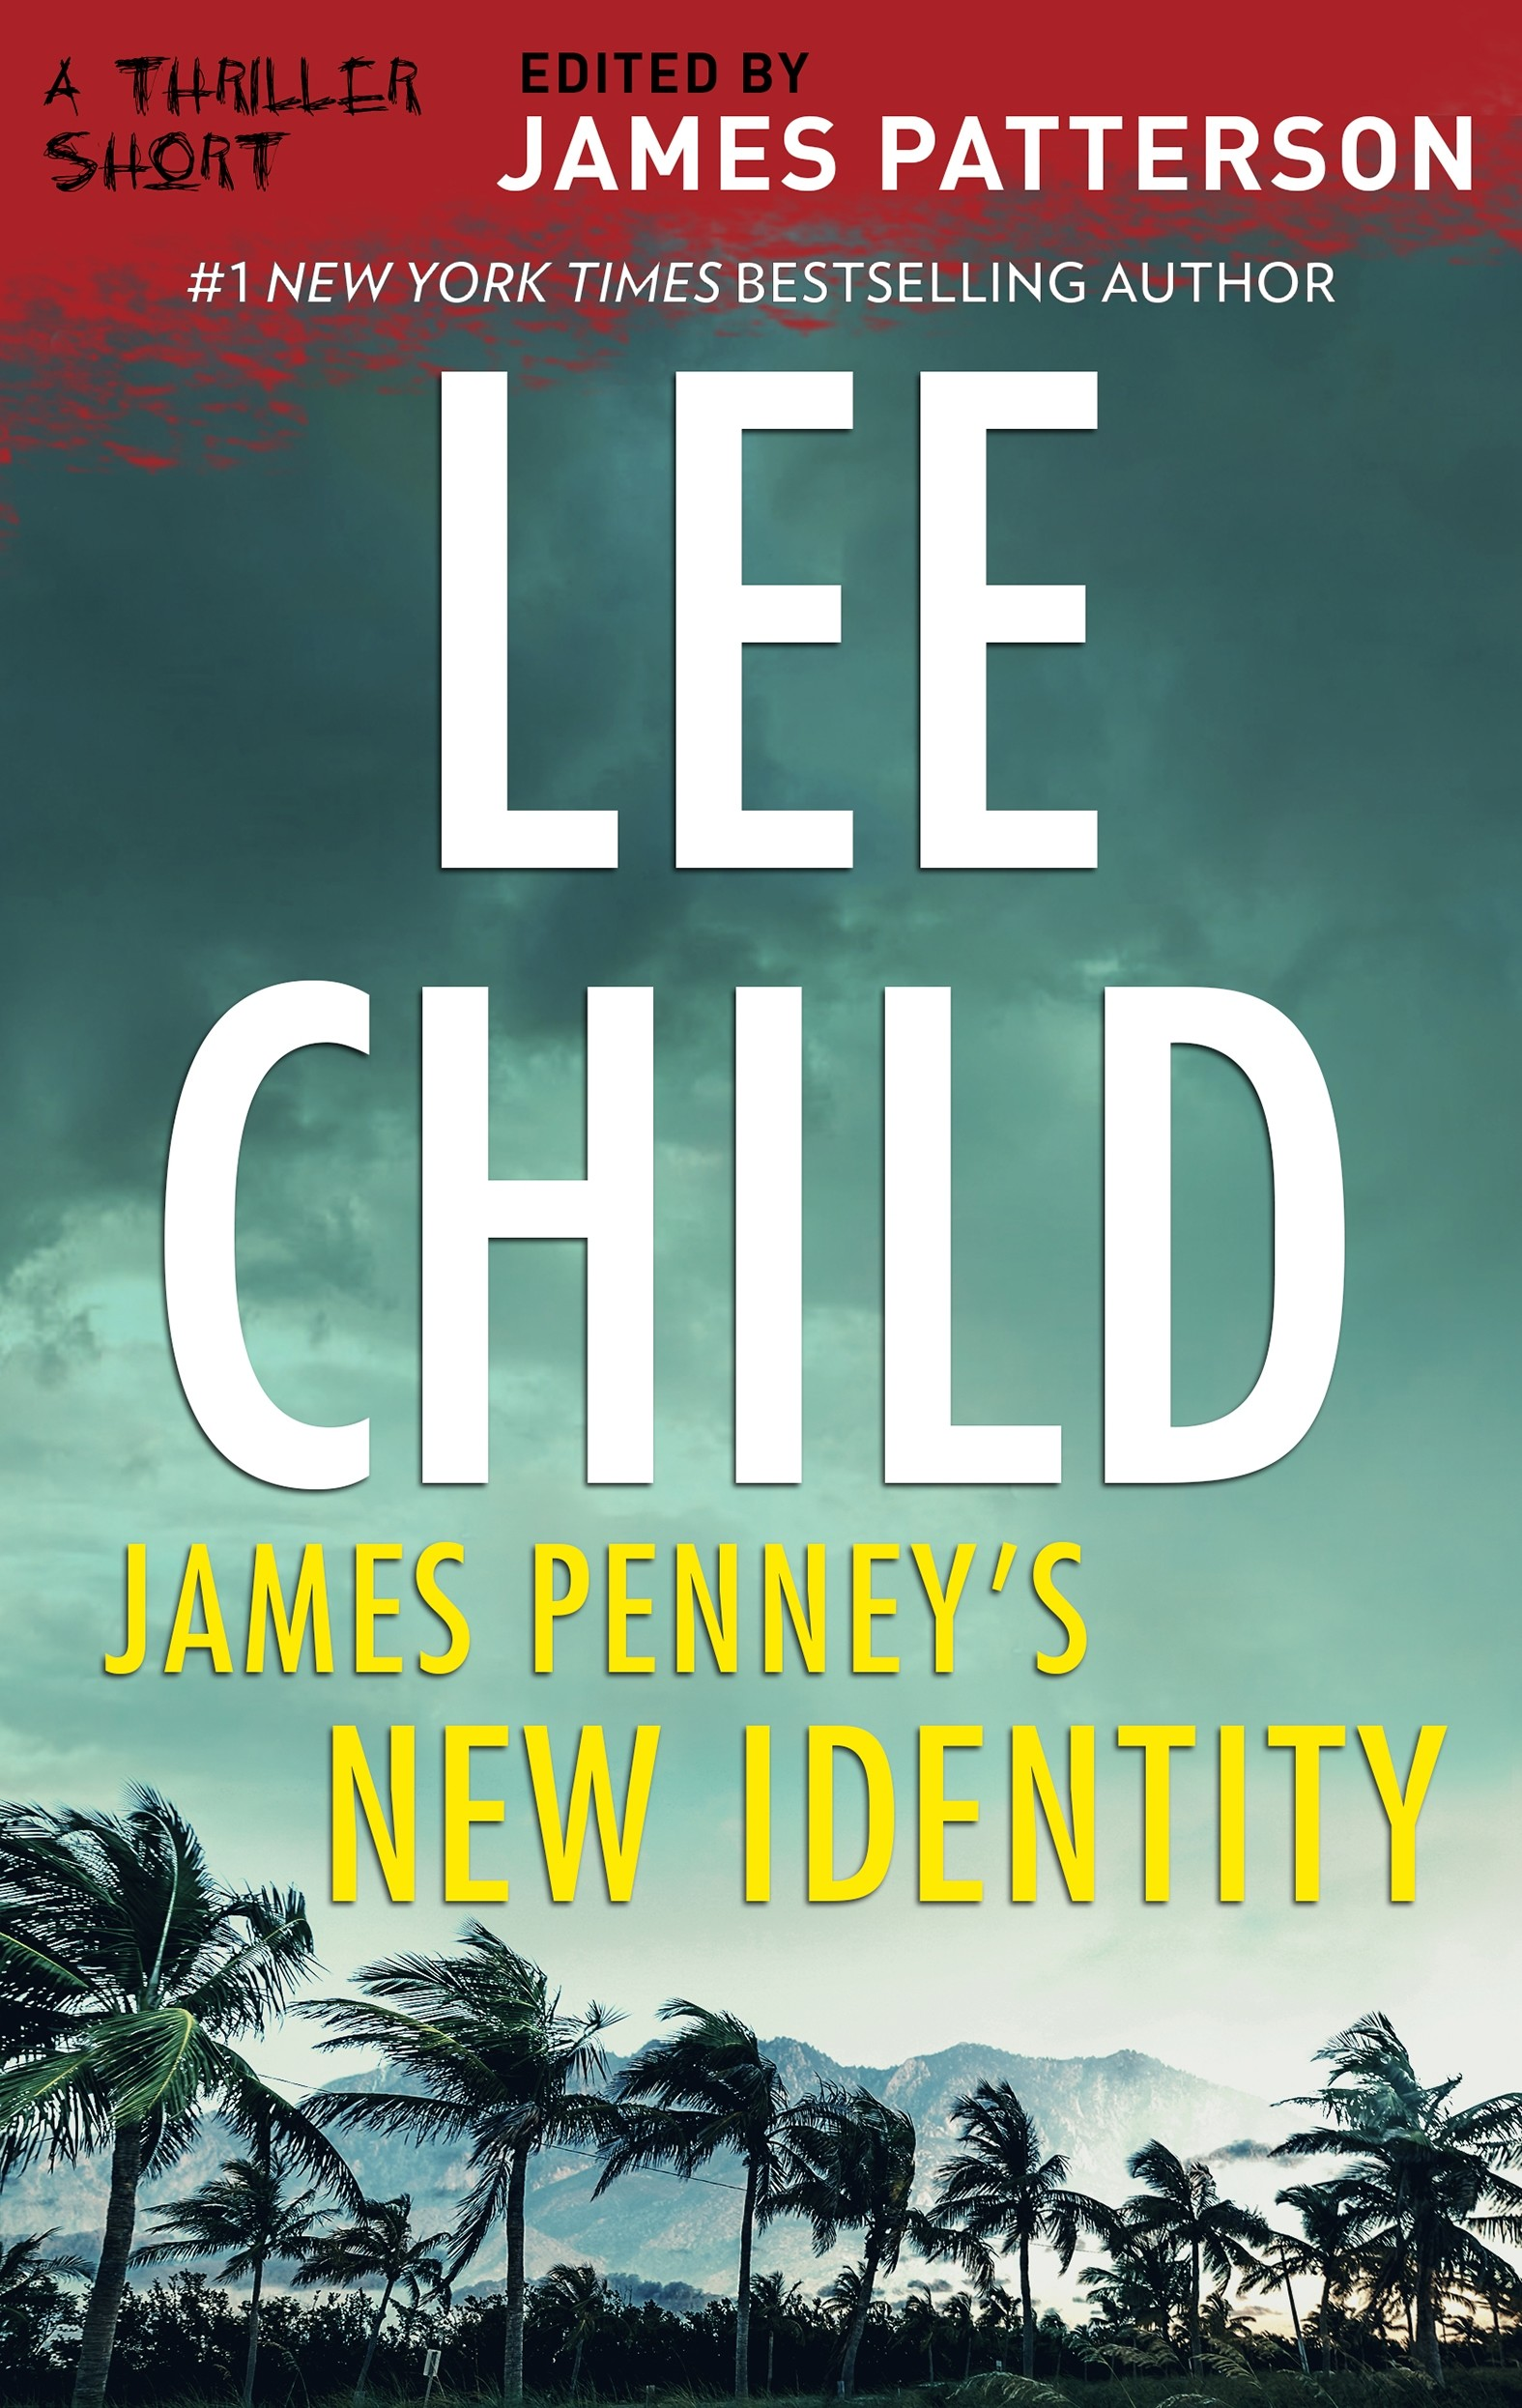 Cover Image of James Penney's New Identity